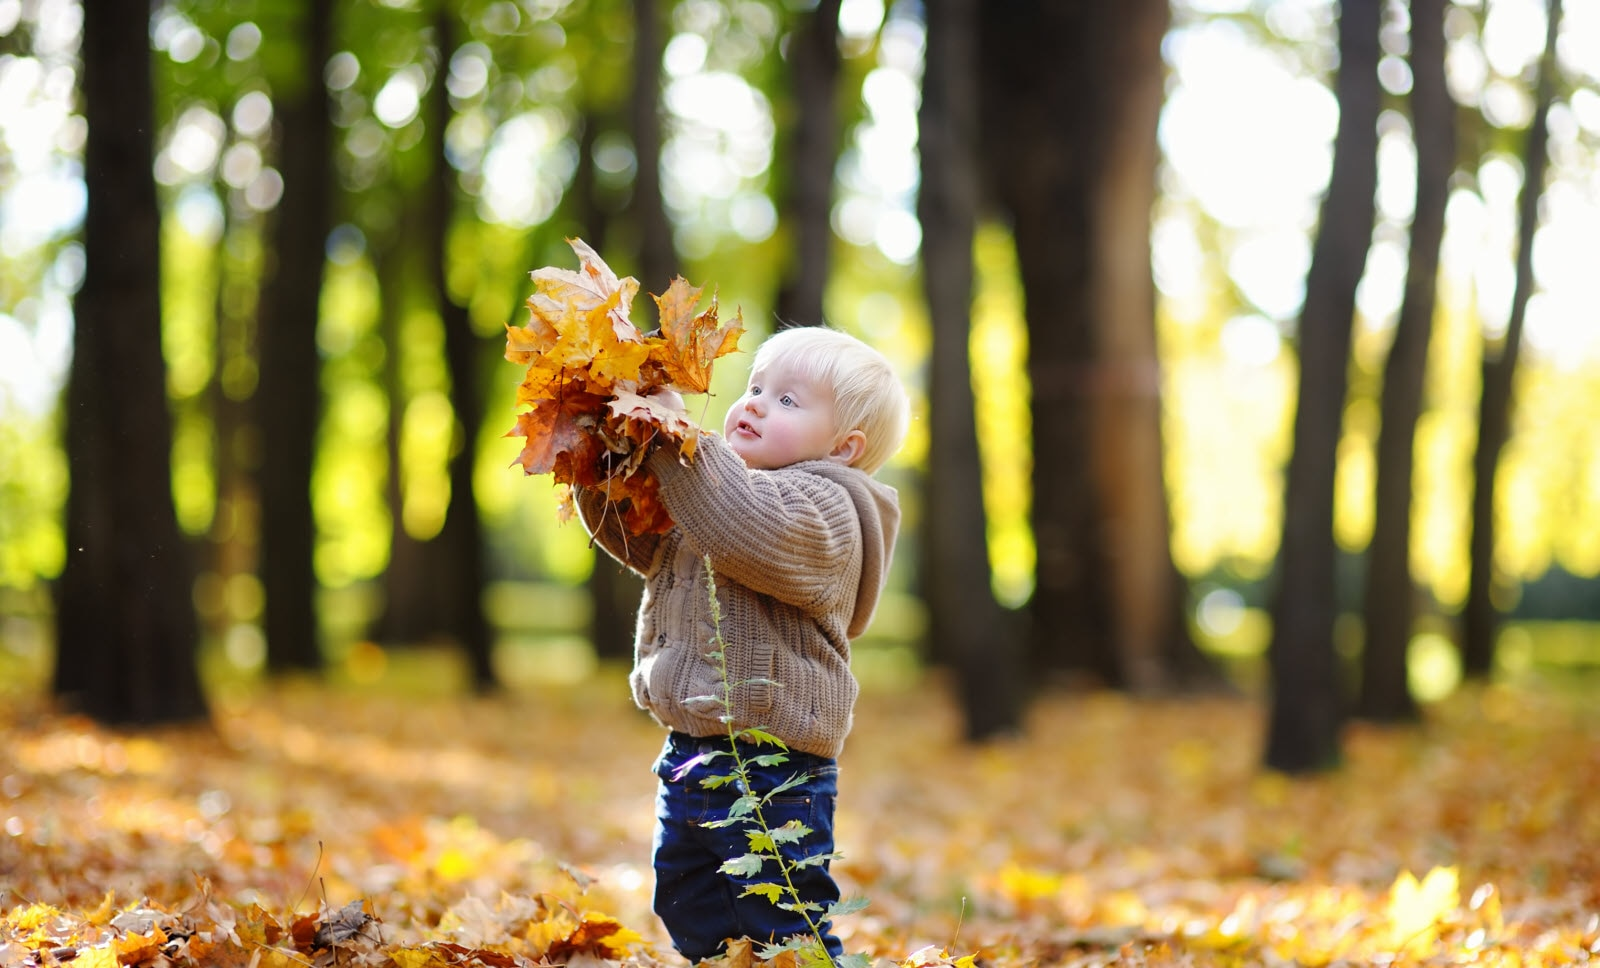 Boy playing with autumn leaves in park